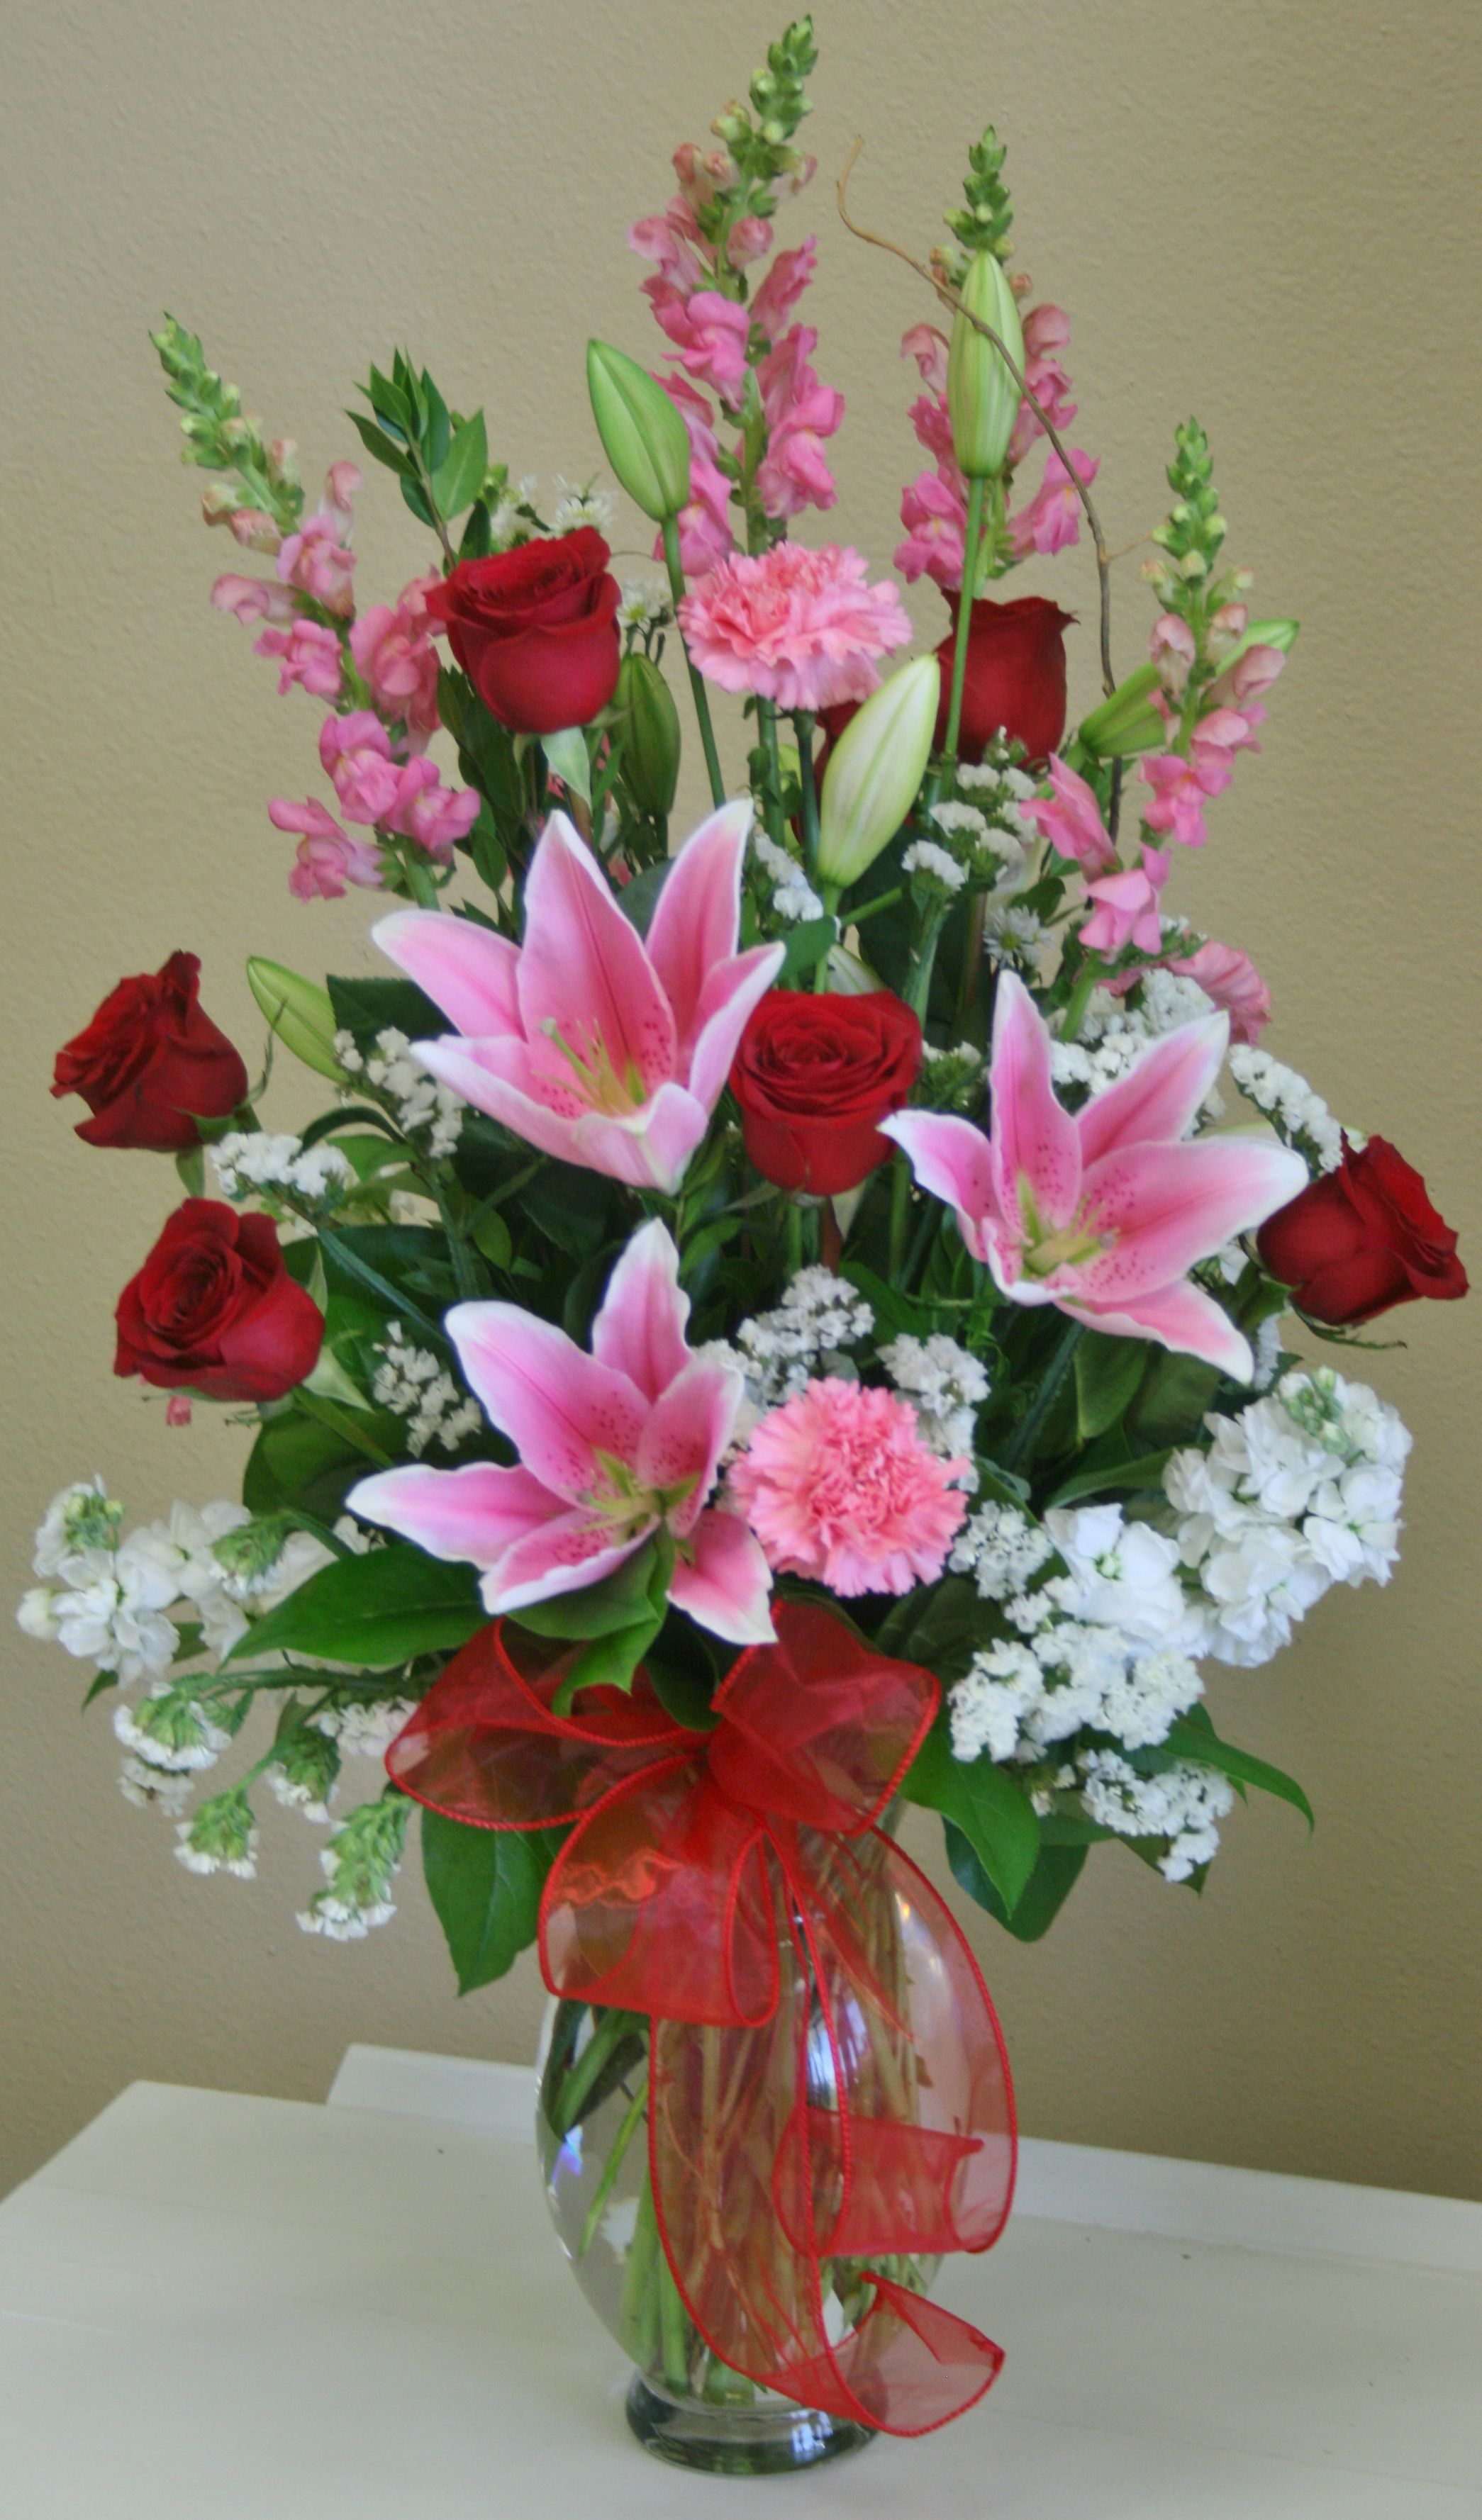 A Romantic Red White And Pink Flower Arrangement By Your Local